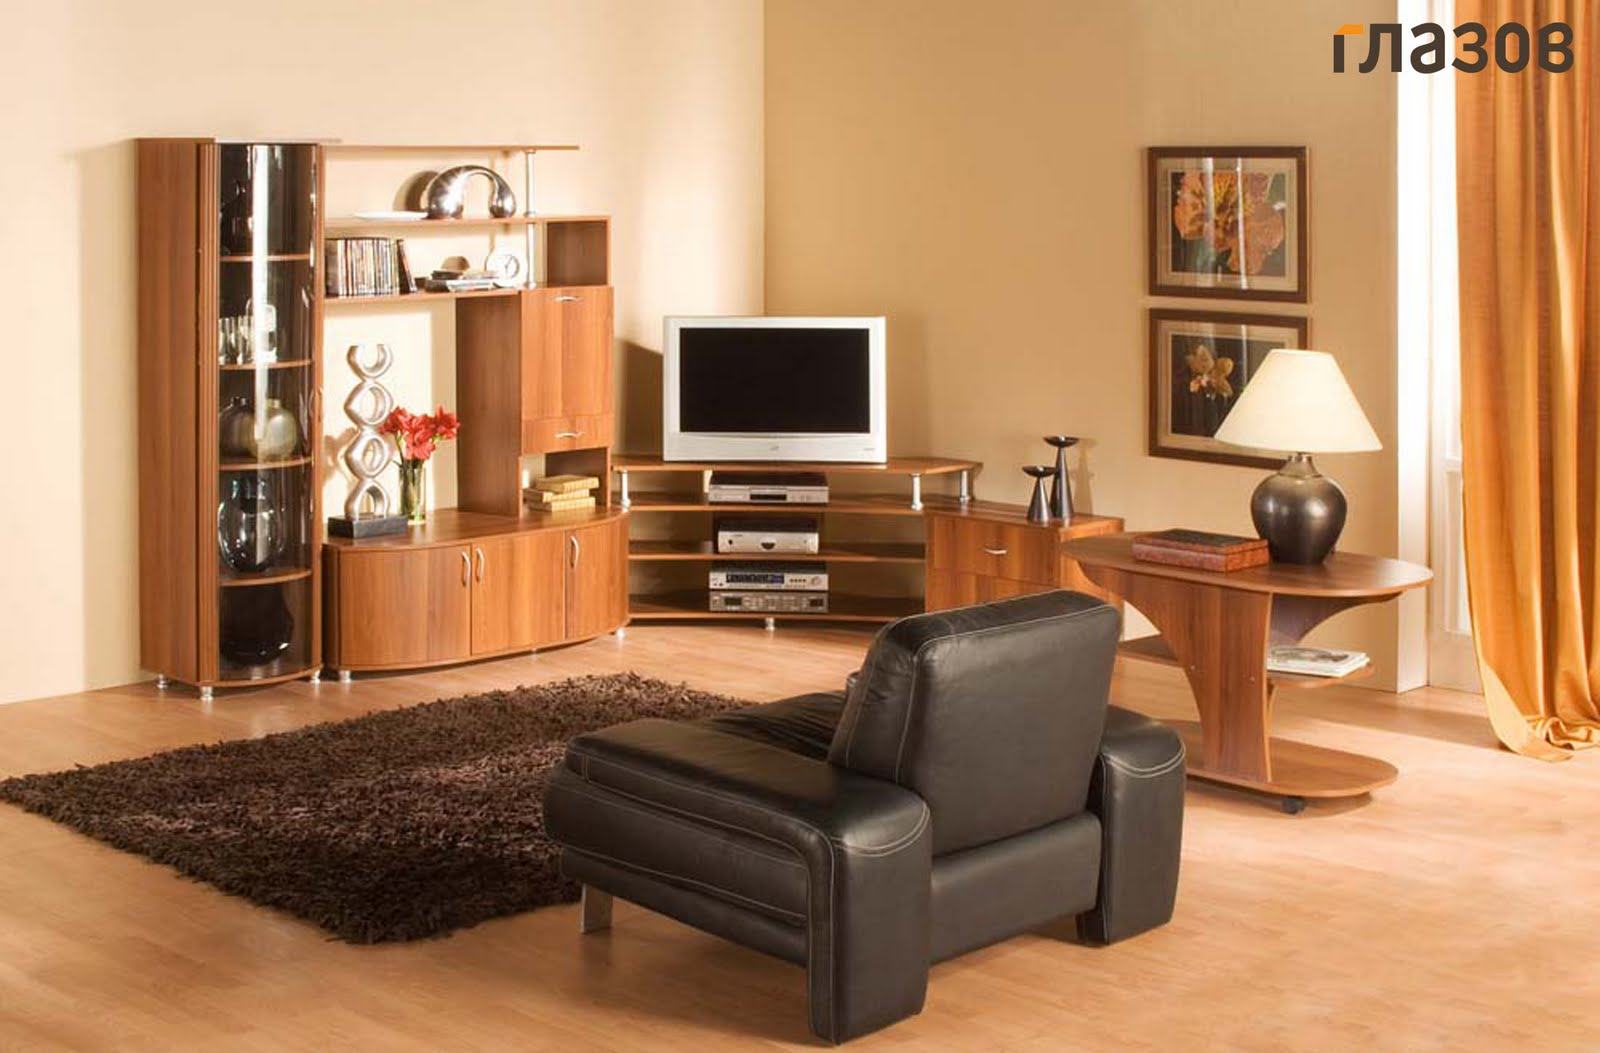 Tv Stand Designs Kerala : Kerala home design and floor plans furniture tv stands